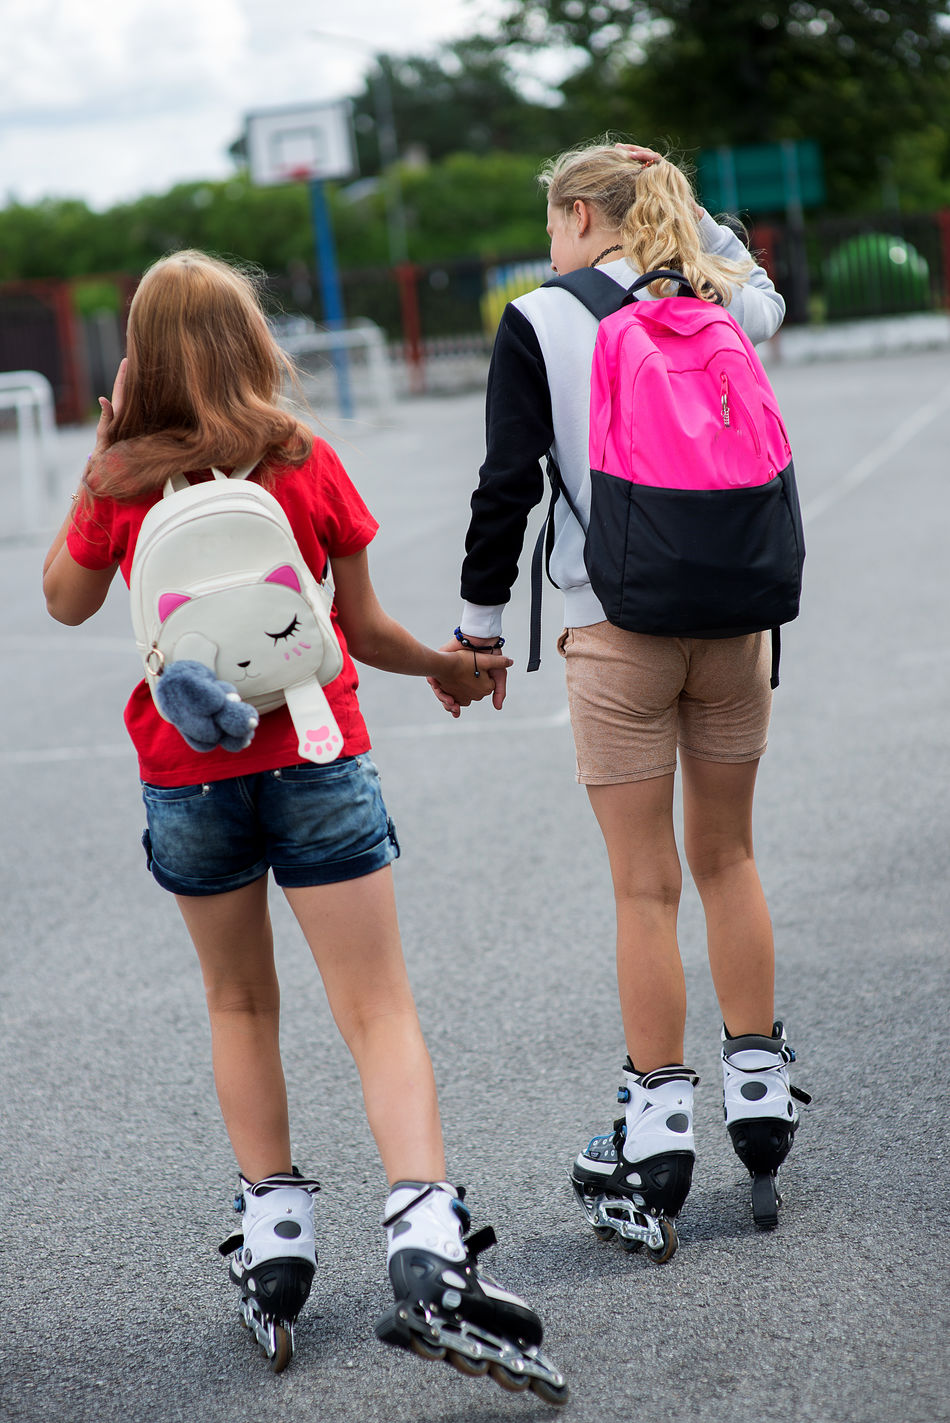 Students Backpack Bonding Casual Clothing Childhood Day Elementary Age Focus On Foreground Friendgirl Friendship Full Length Girls Leisure Activity Lifestyles Outdoors Pink Color Real People Rear View Rollerskates Schoolgirls Togetherness Two People Women Young Adult Young Women